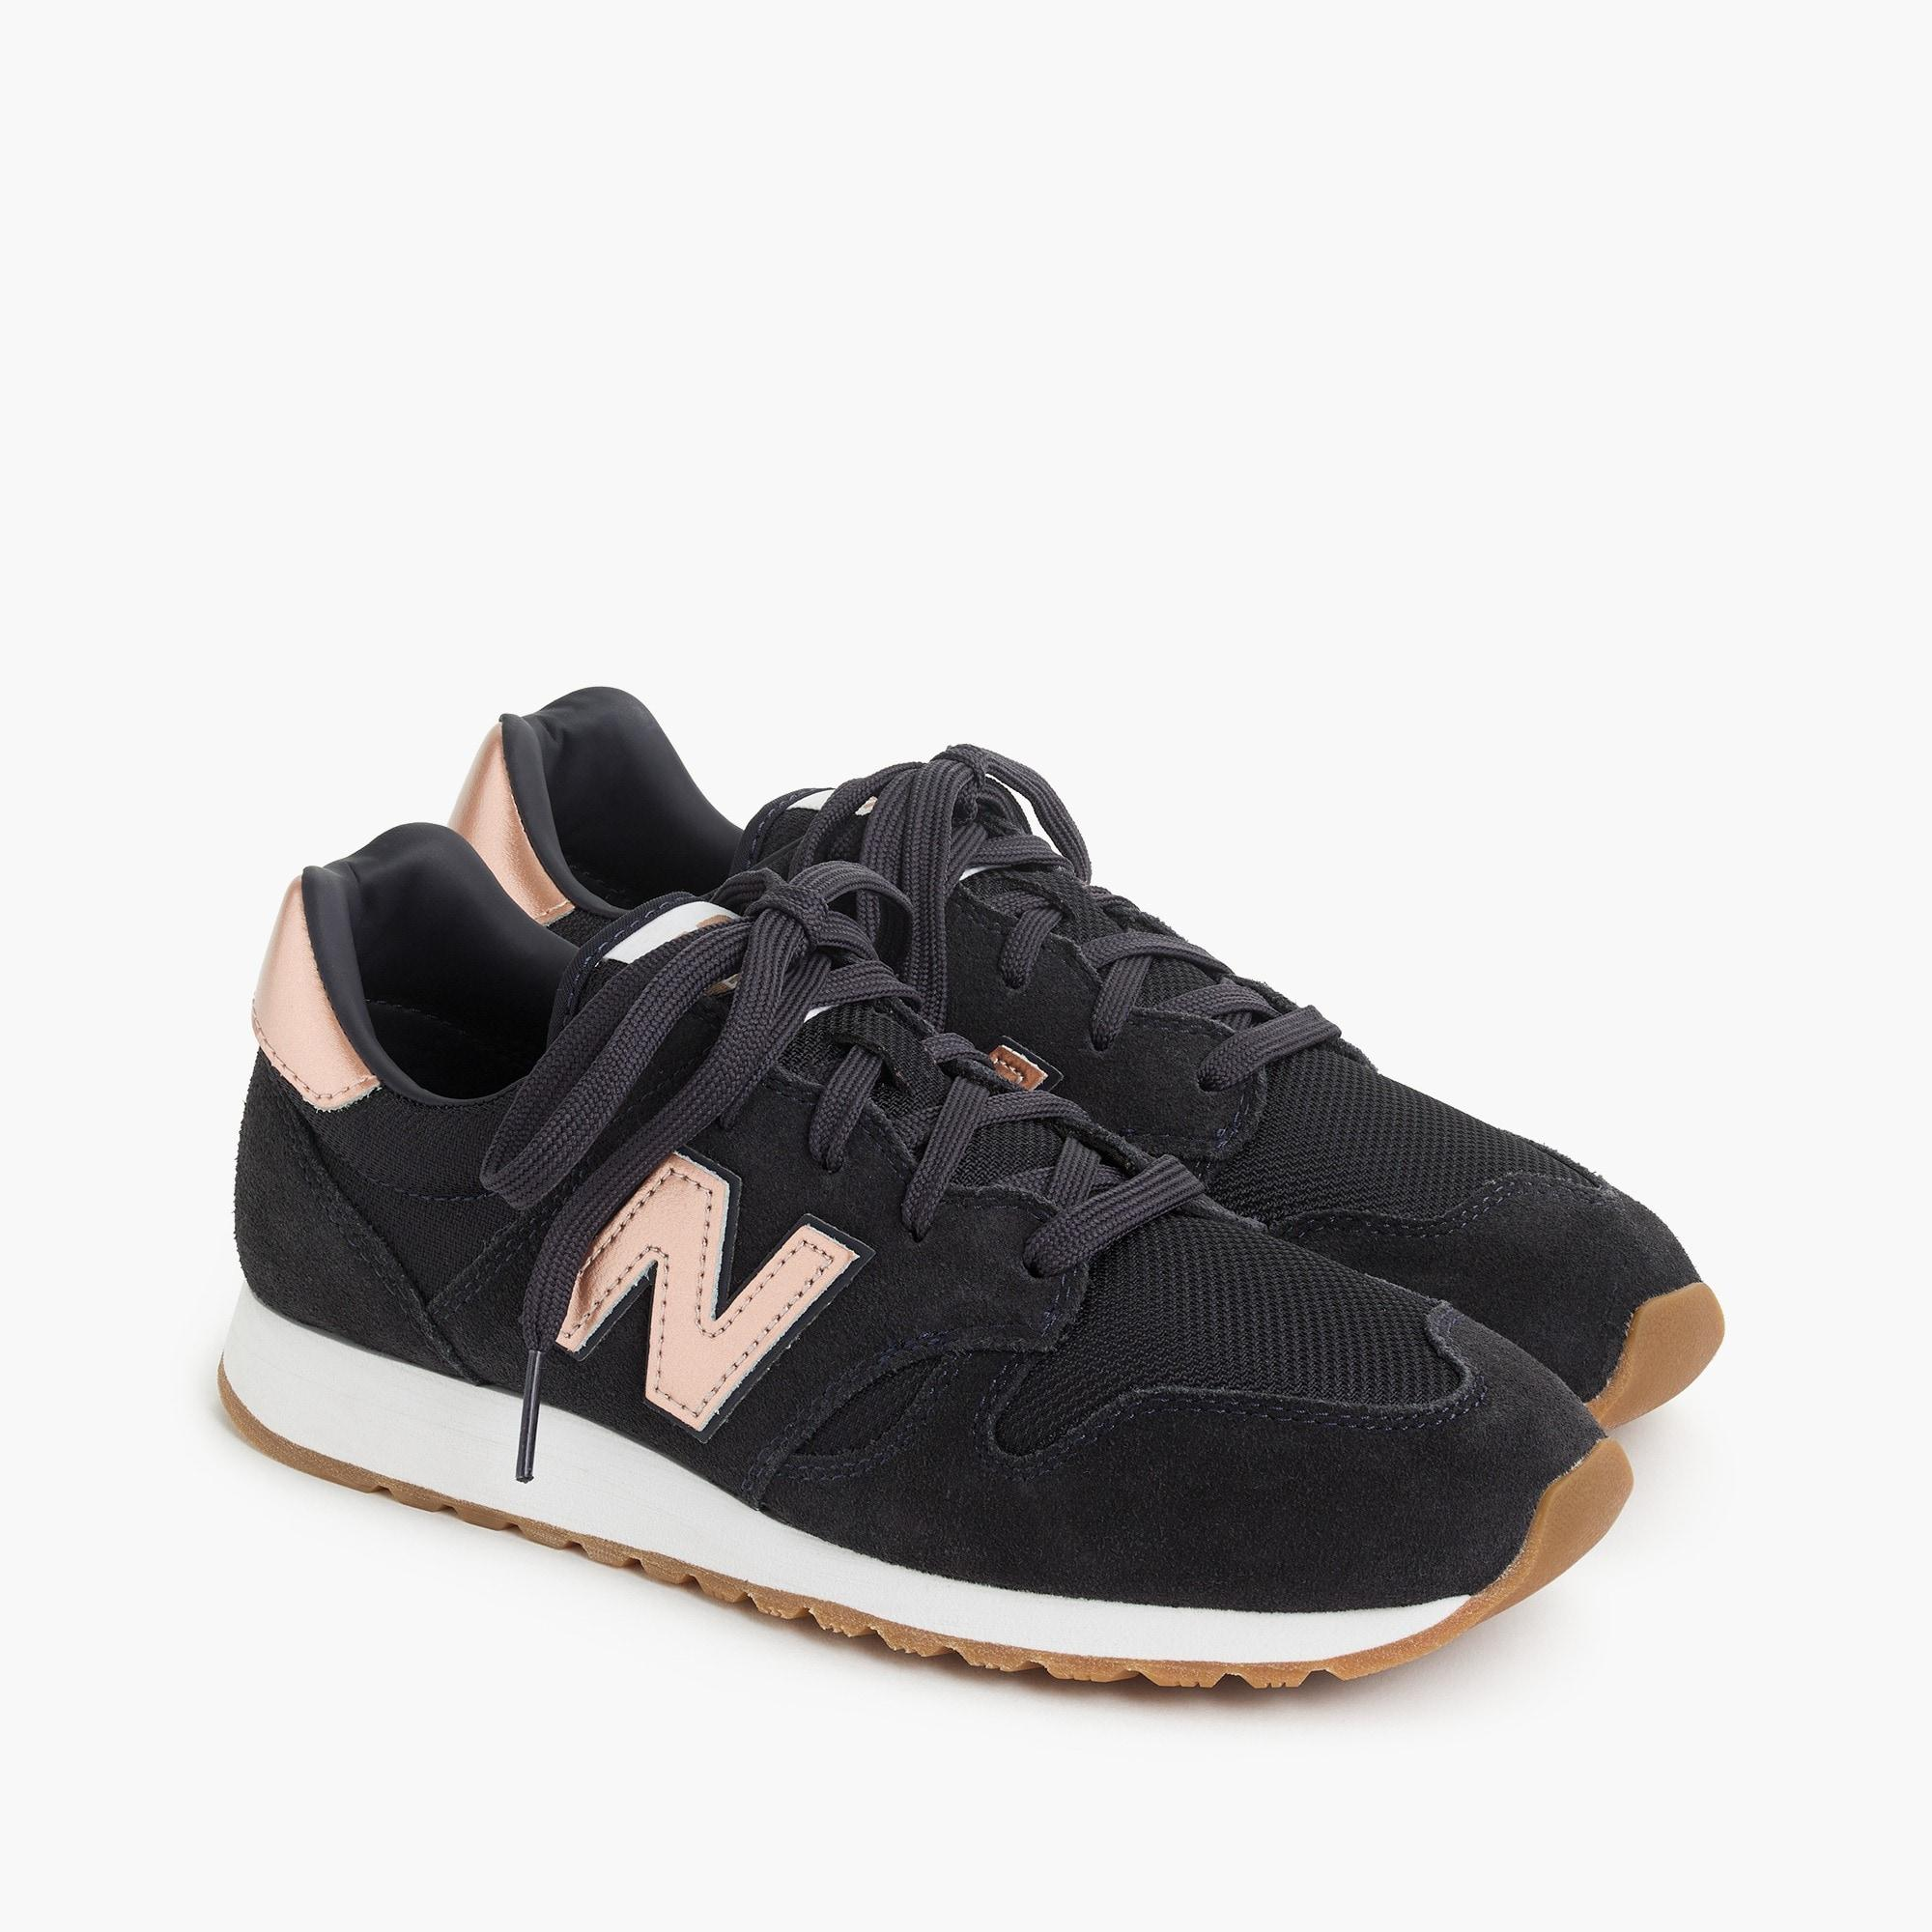 New Balance Suede ® For J.crew 520 Sneakers in Navy Rose Gold ...